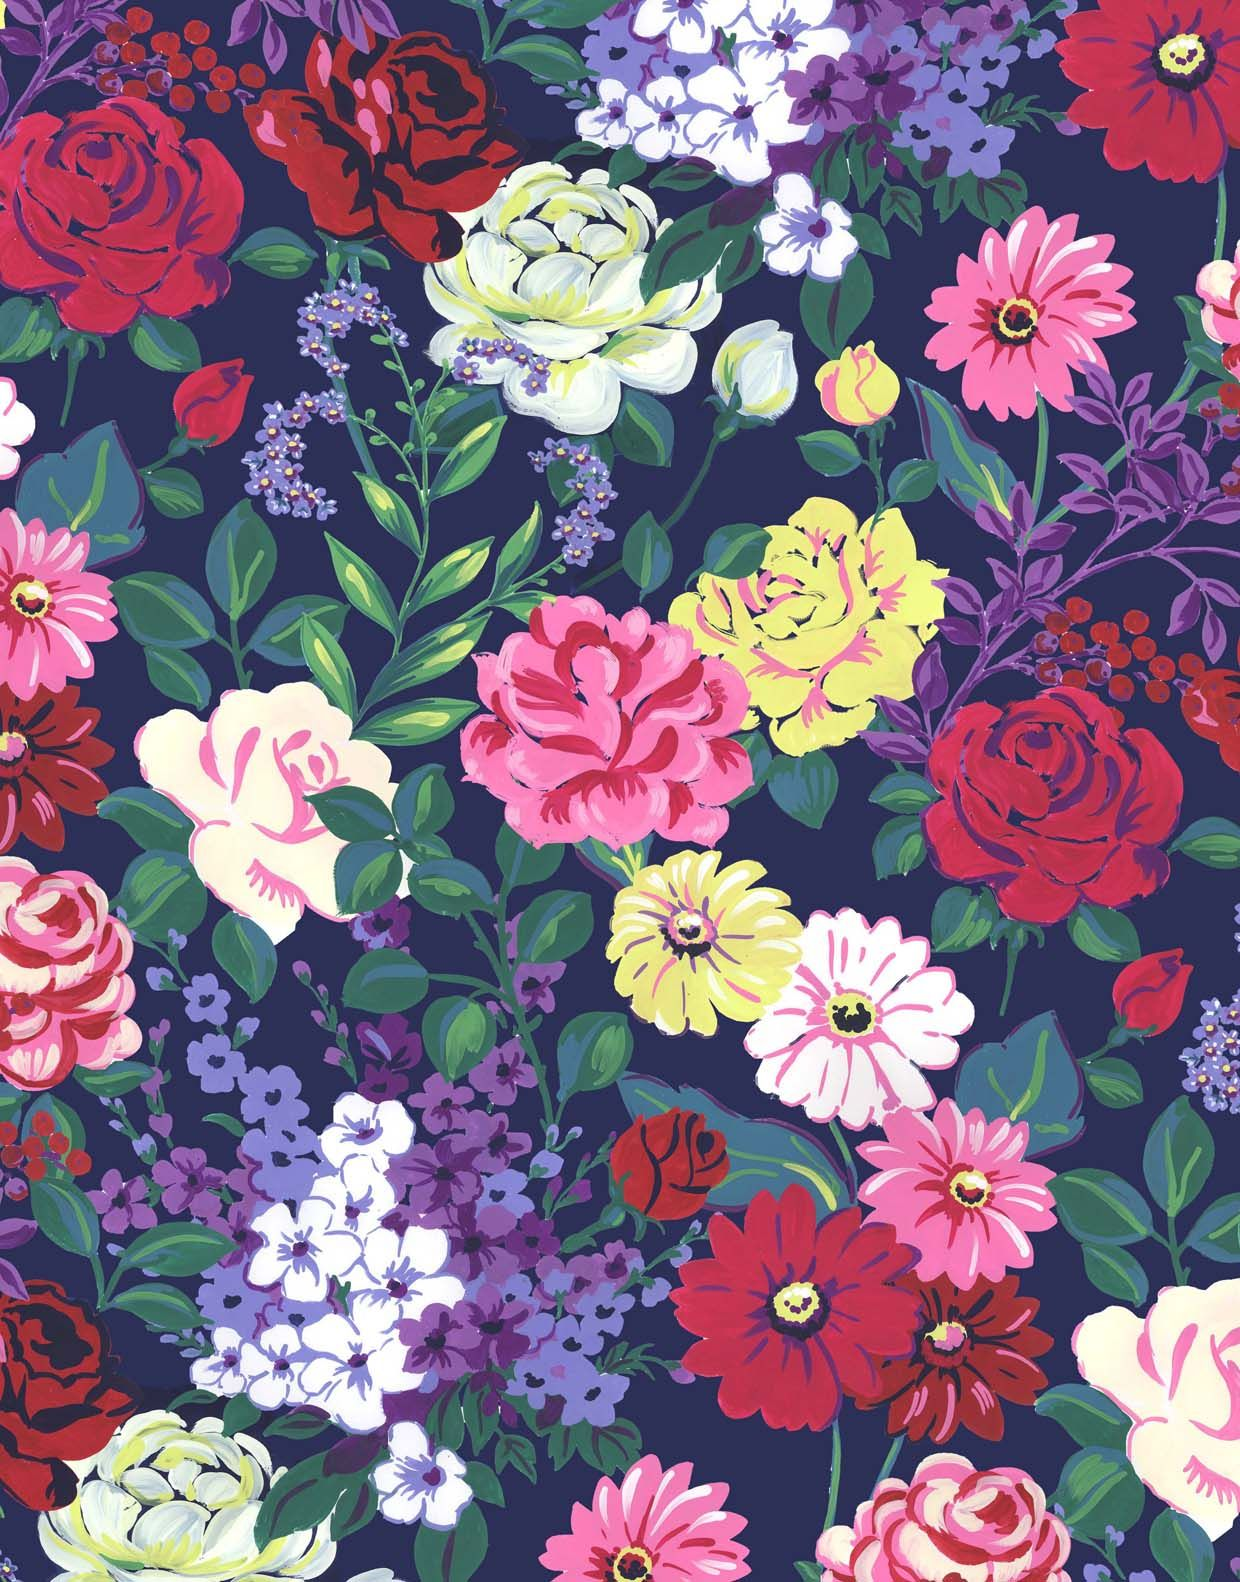 DESIGNS Painterly floral Pattern art, Floral painting